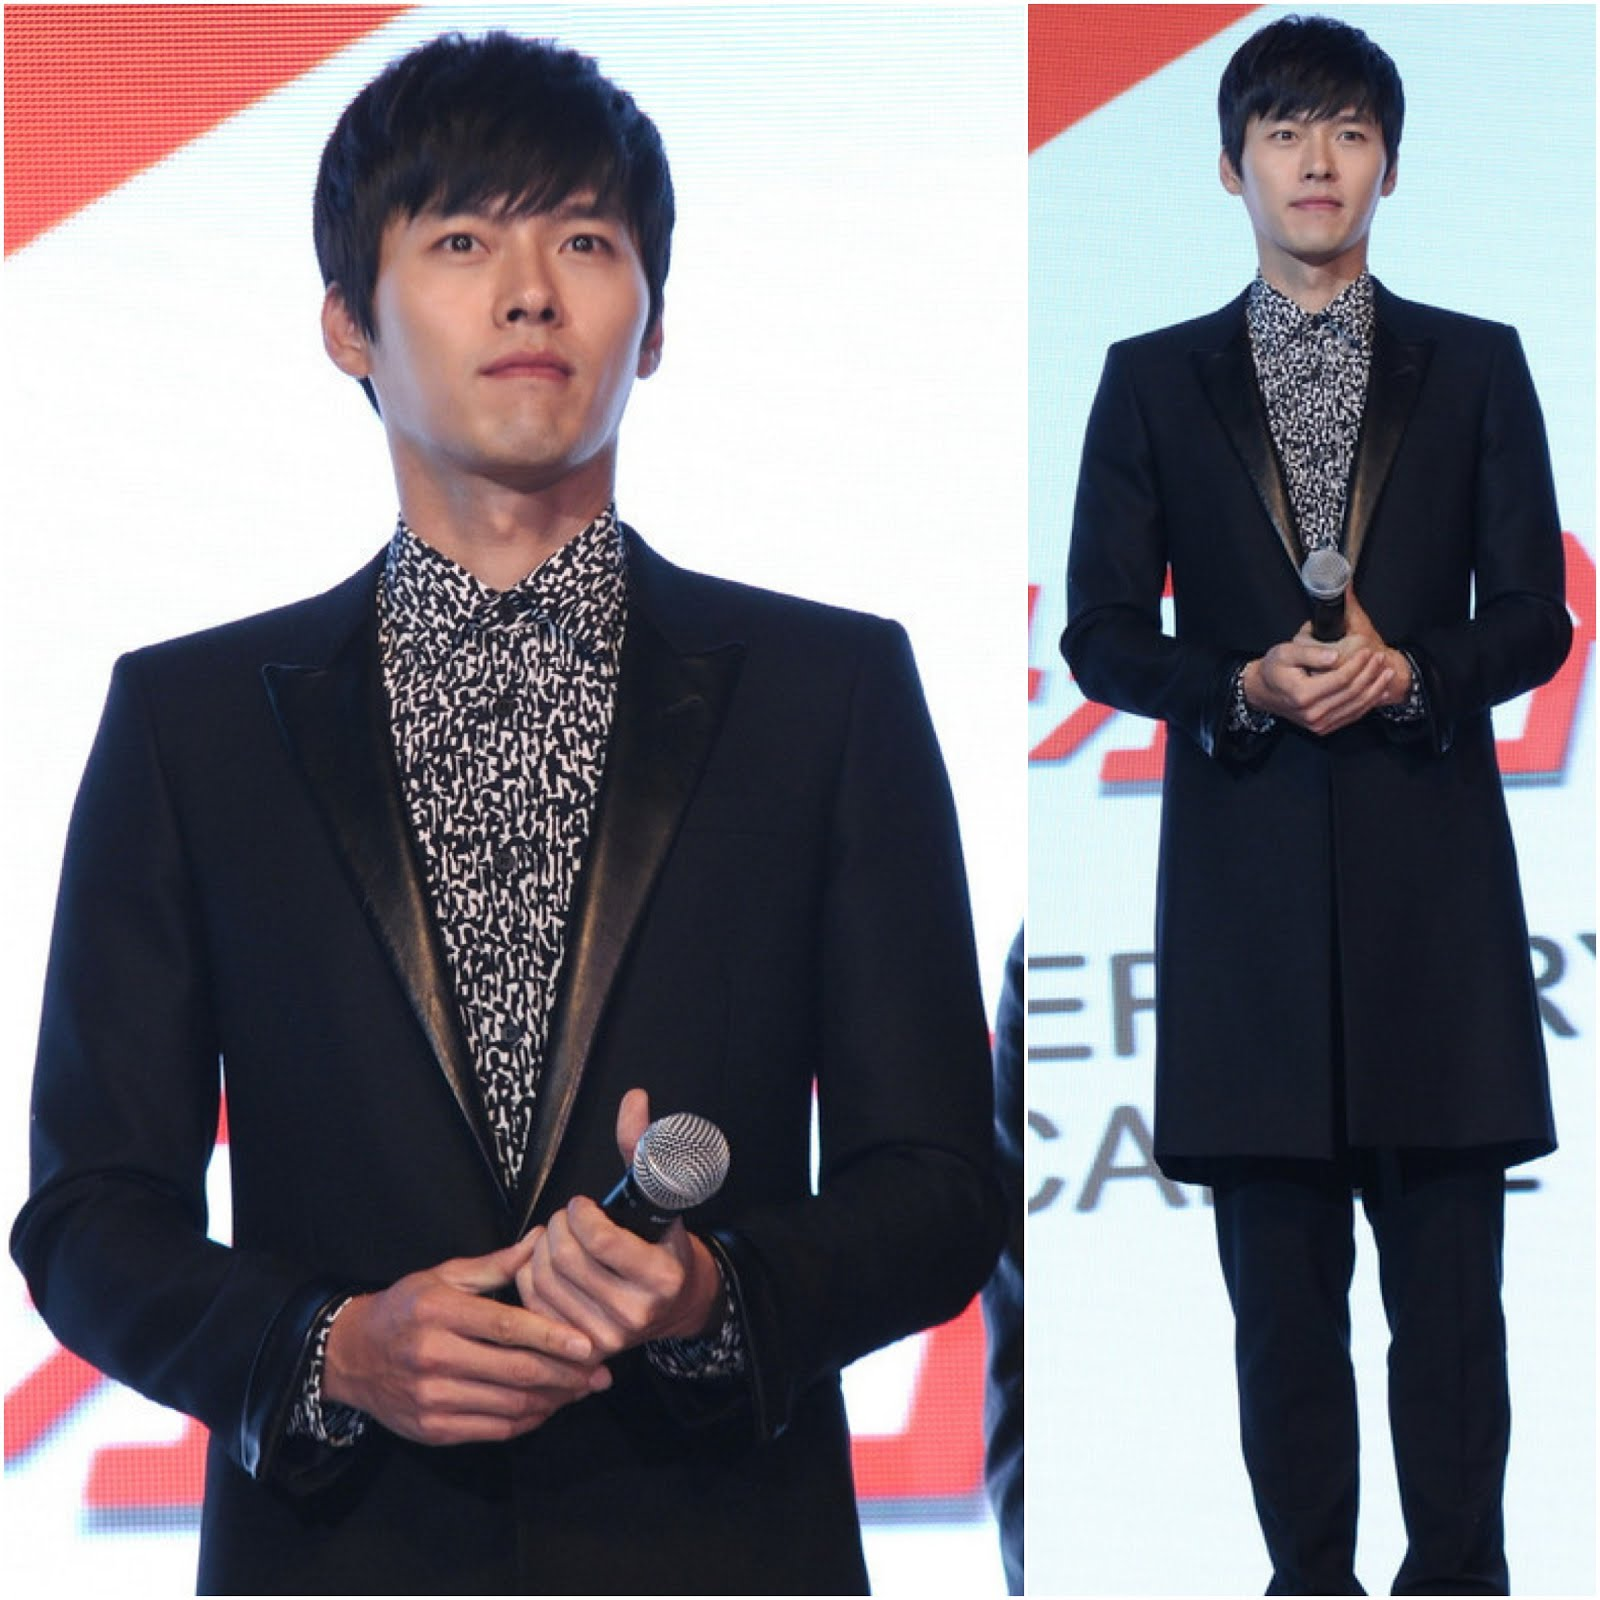 Hyun Bin [玄彬] in Saint Laurent matt lane leather lapel coat and leopard print cotton voile shirt - Shanghai press event [韩国明星玄彬现身上海]